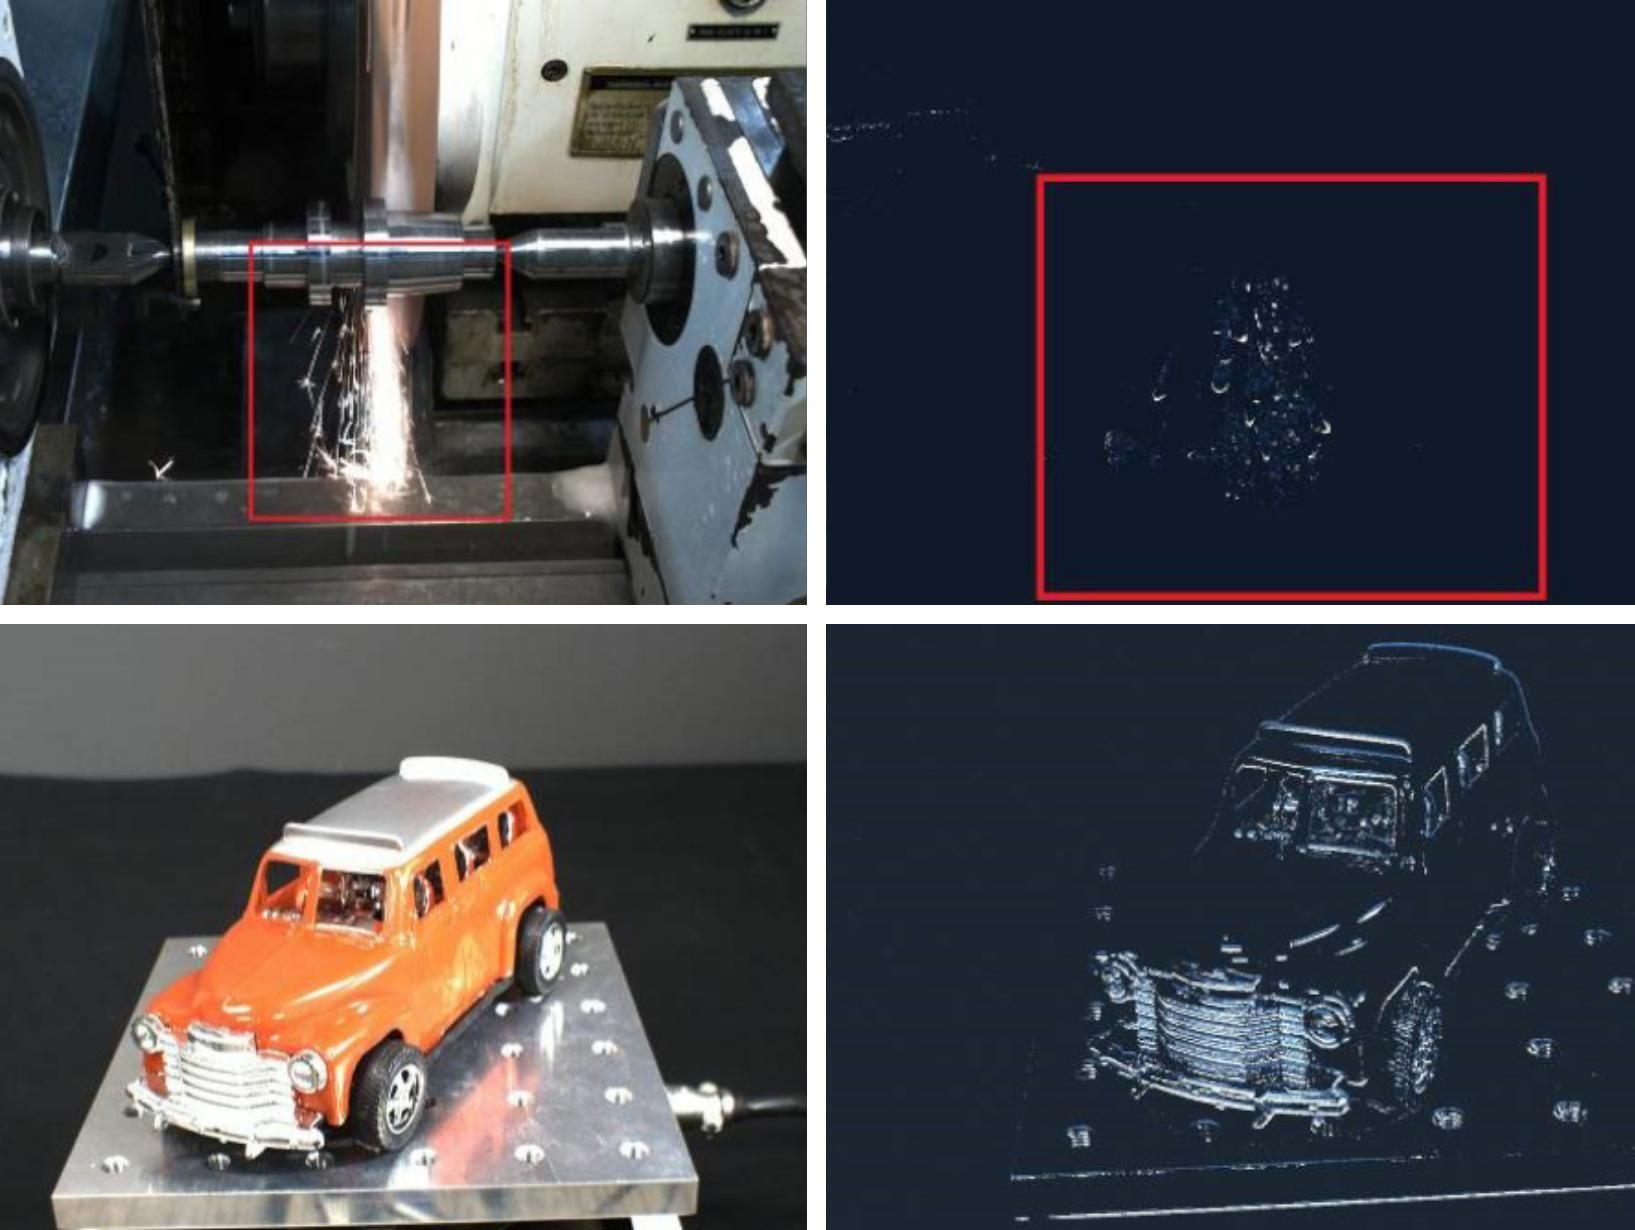 In the top left quadrant sparks fly from a rod-like machine. At top right, a red box encloses speckled droplets where the sparks from the first image would be on a field of black. In the bottom left quadrant a toy car sits on a metal plate with shot through with an array of drill holes. In the bottom right the outline of the car and the plate are visible on a field of black.